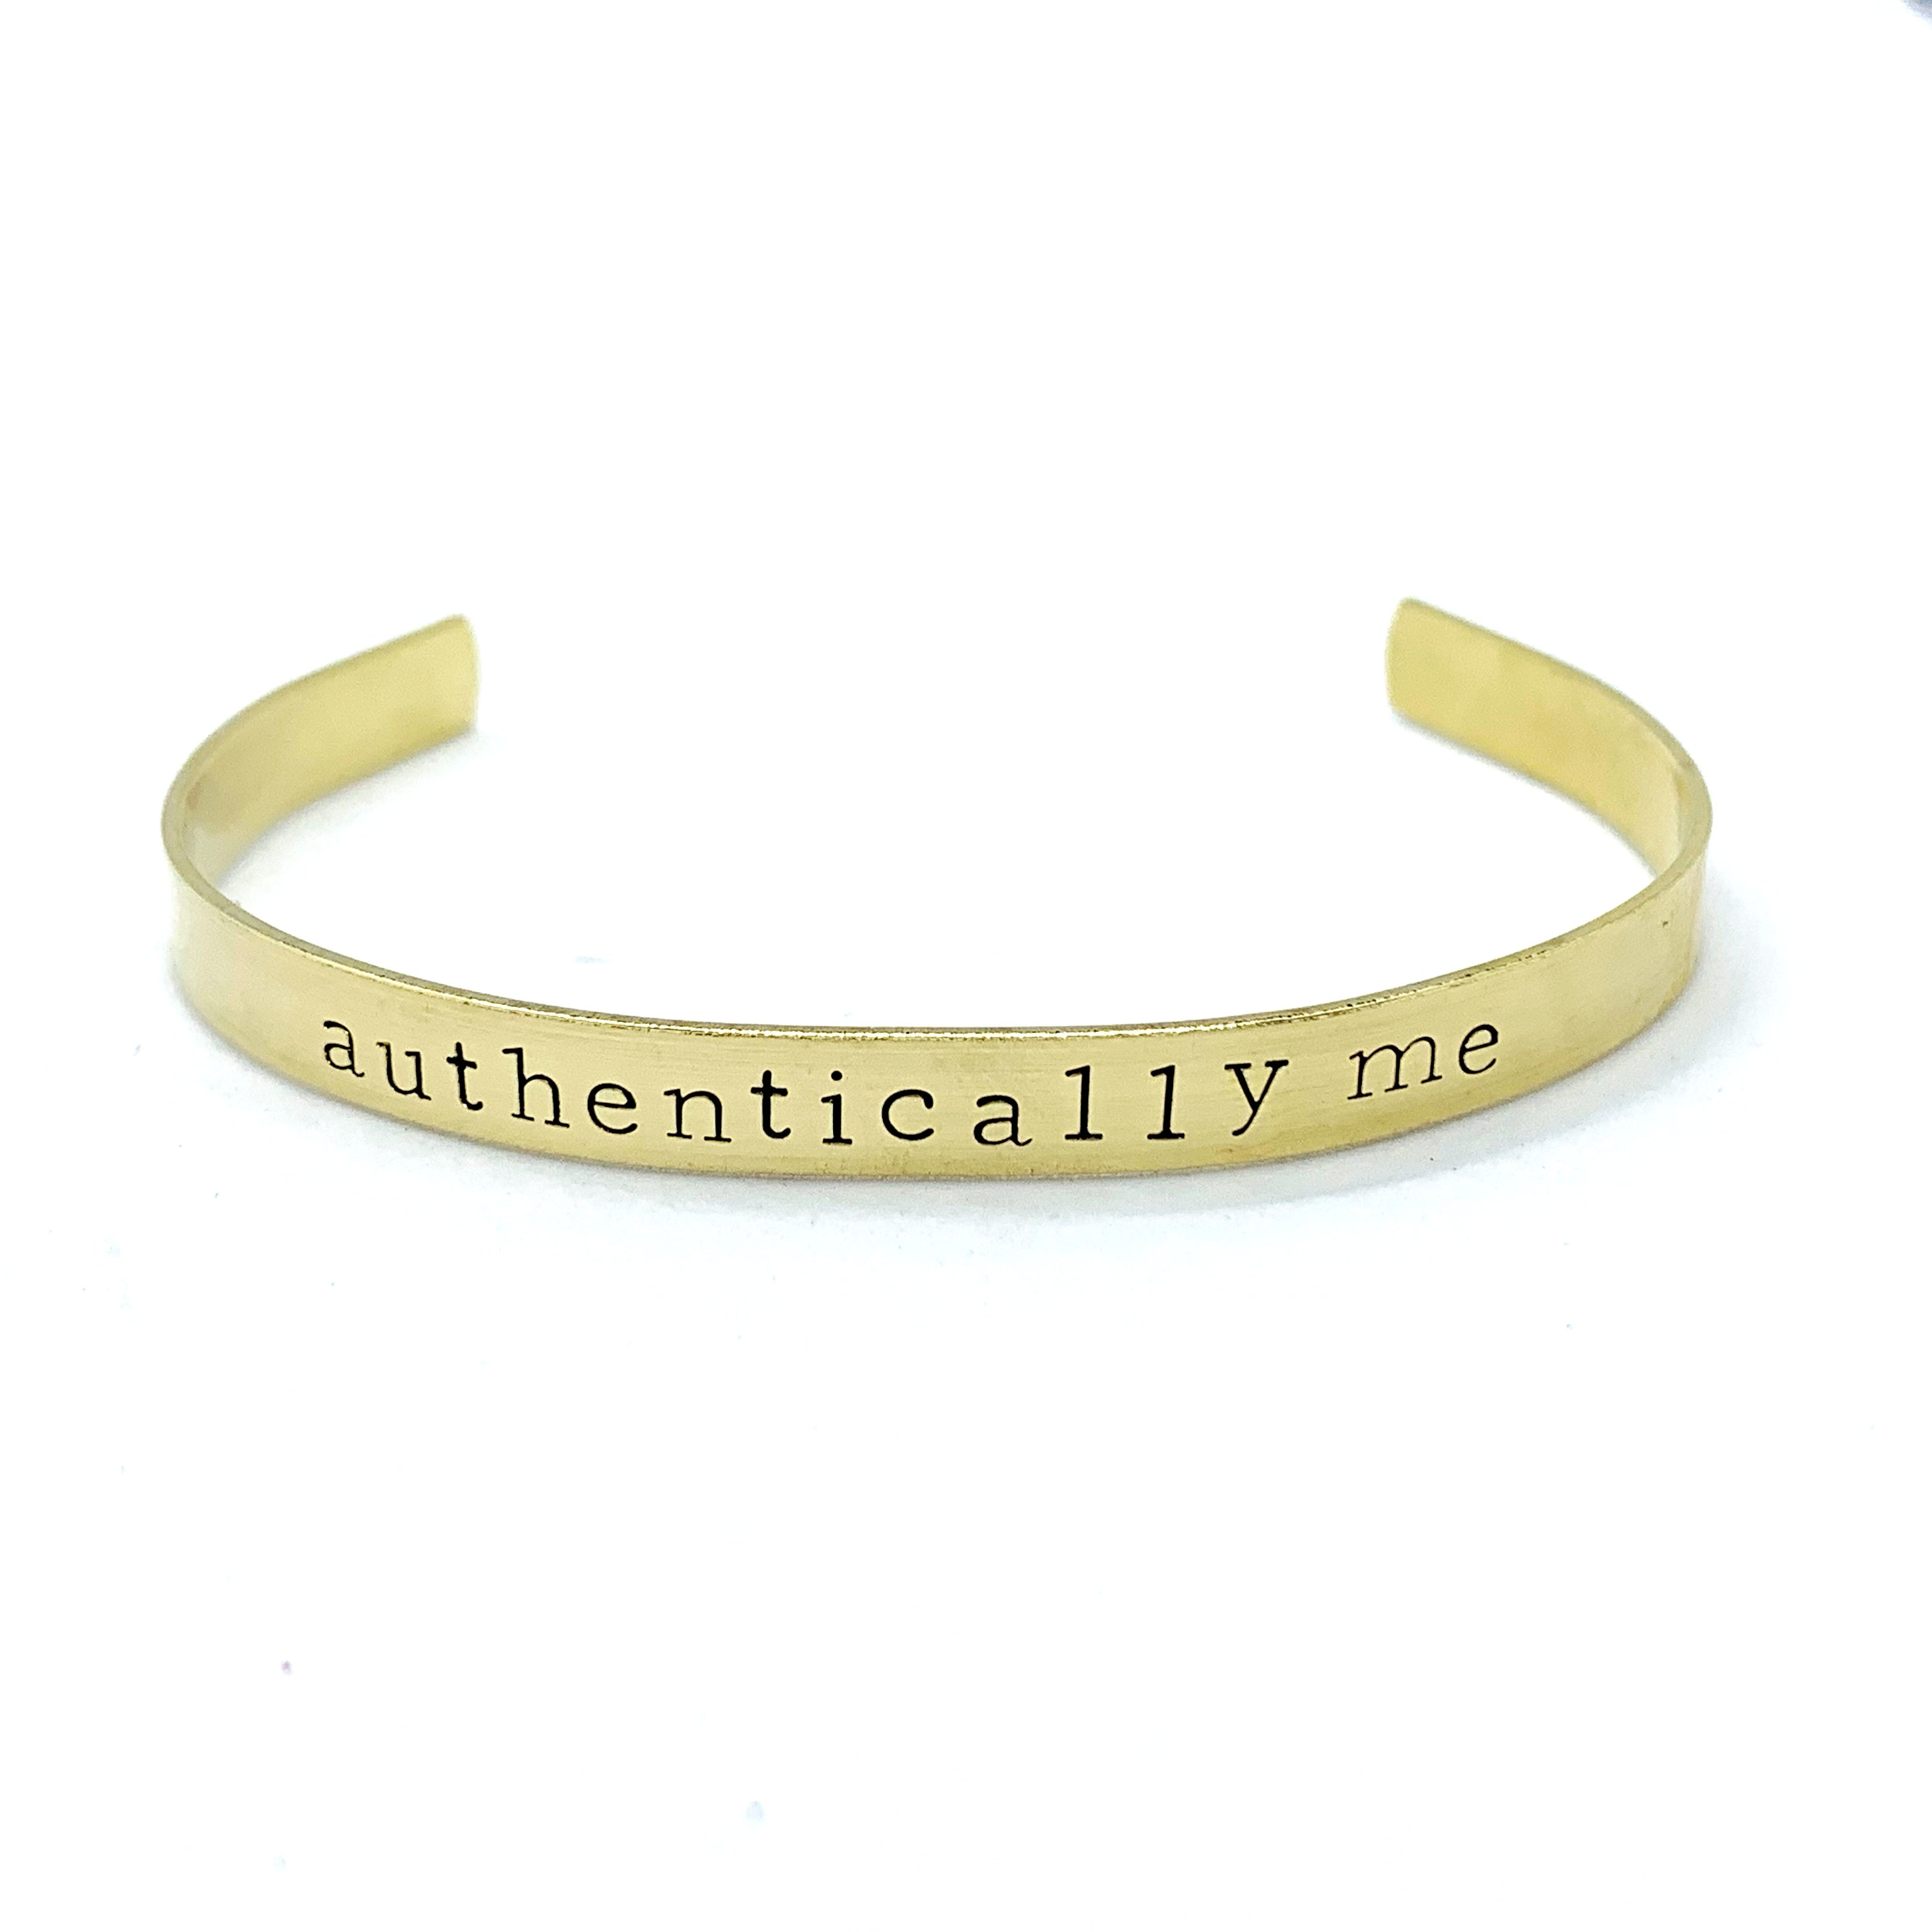 ¼ inch Brass Cuff - Authentically Me